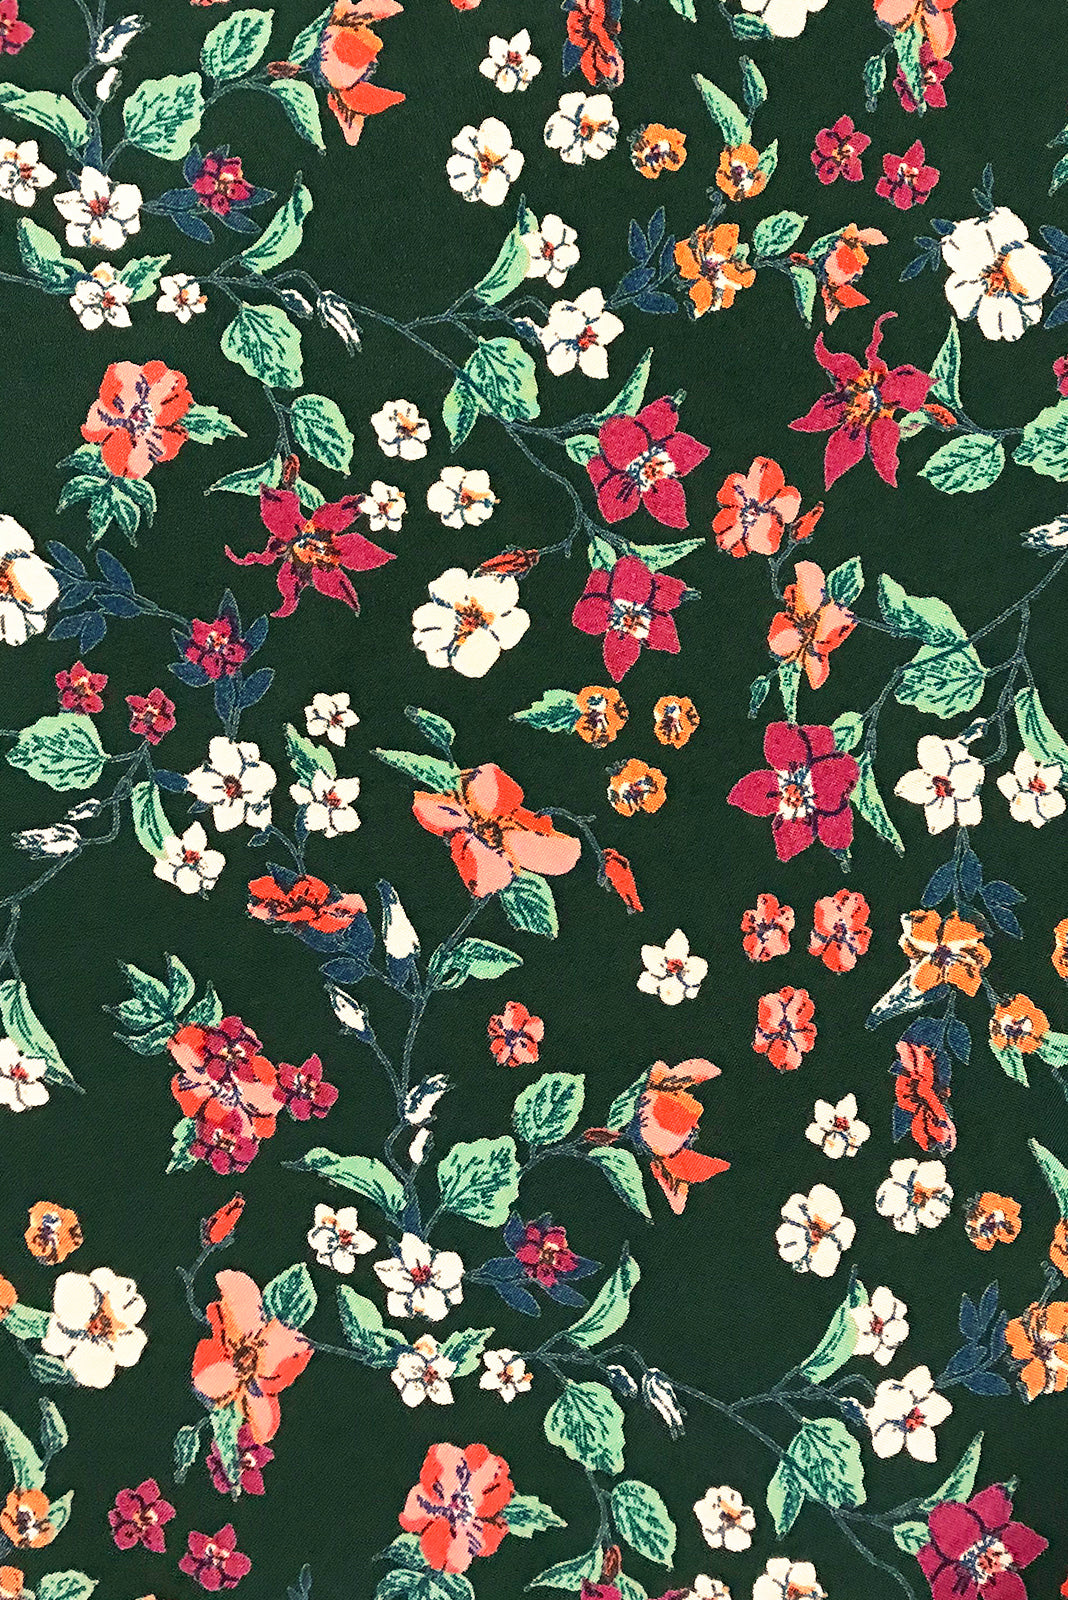 Fabric Swatch of Primrose Autumn Green Dress comes in woven 100% rayon in Green base with cream, pink and orange floral pattern.